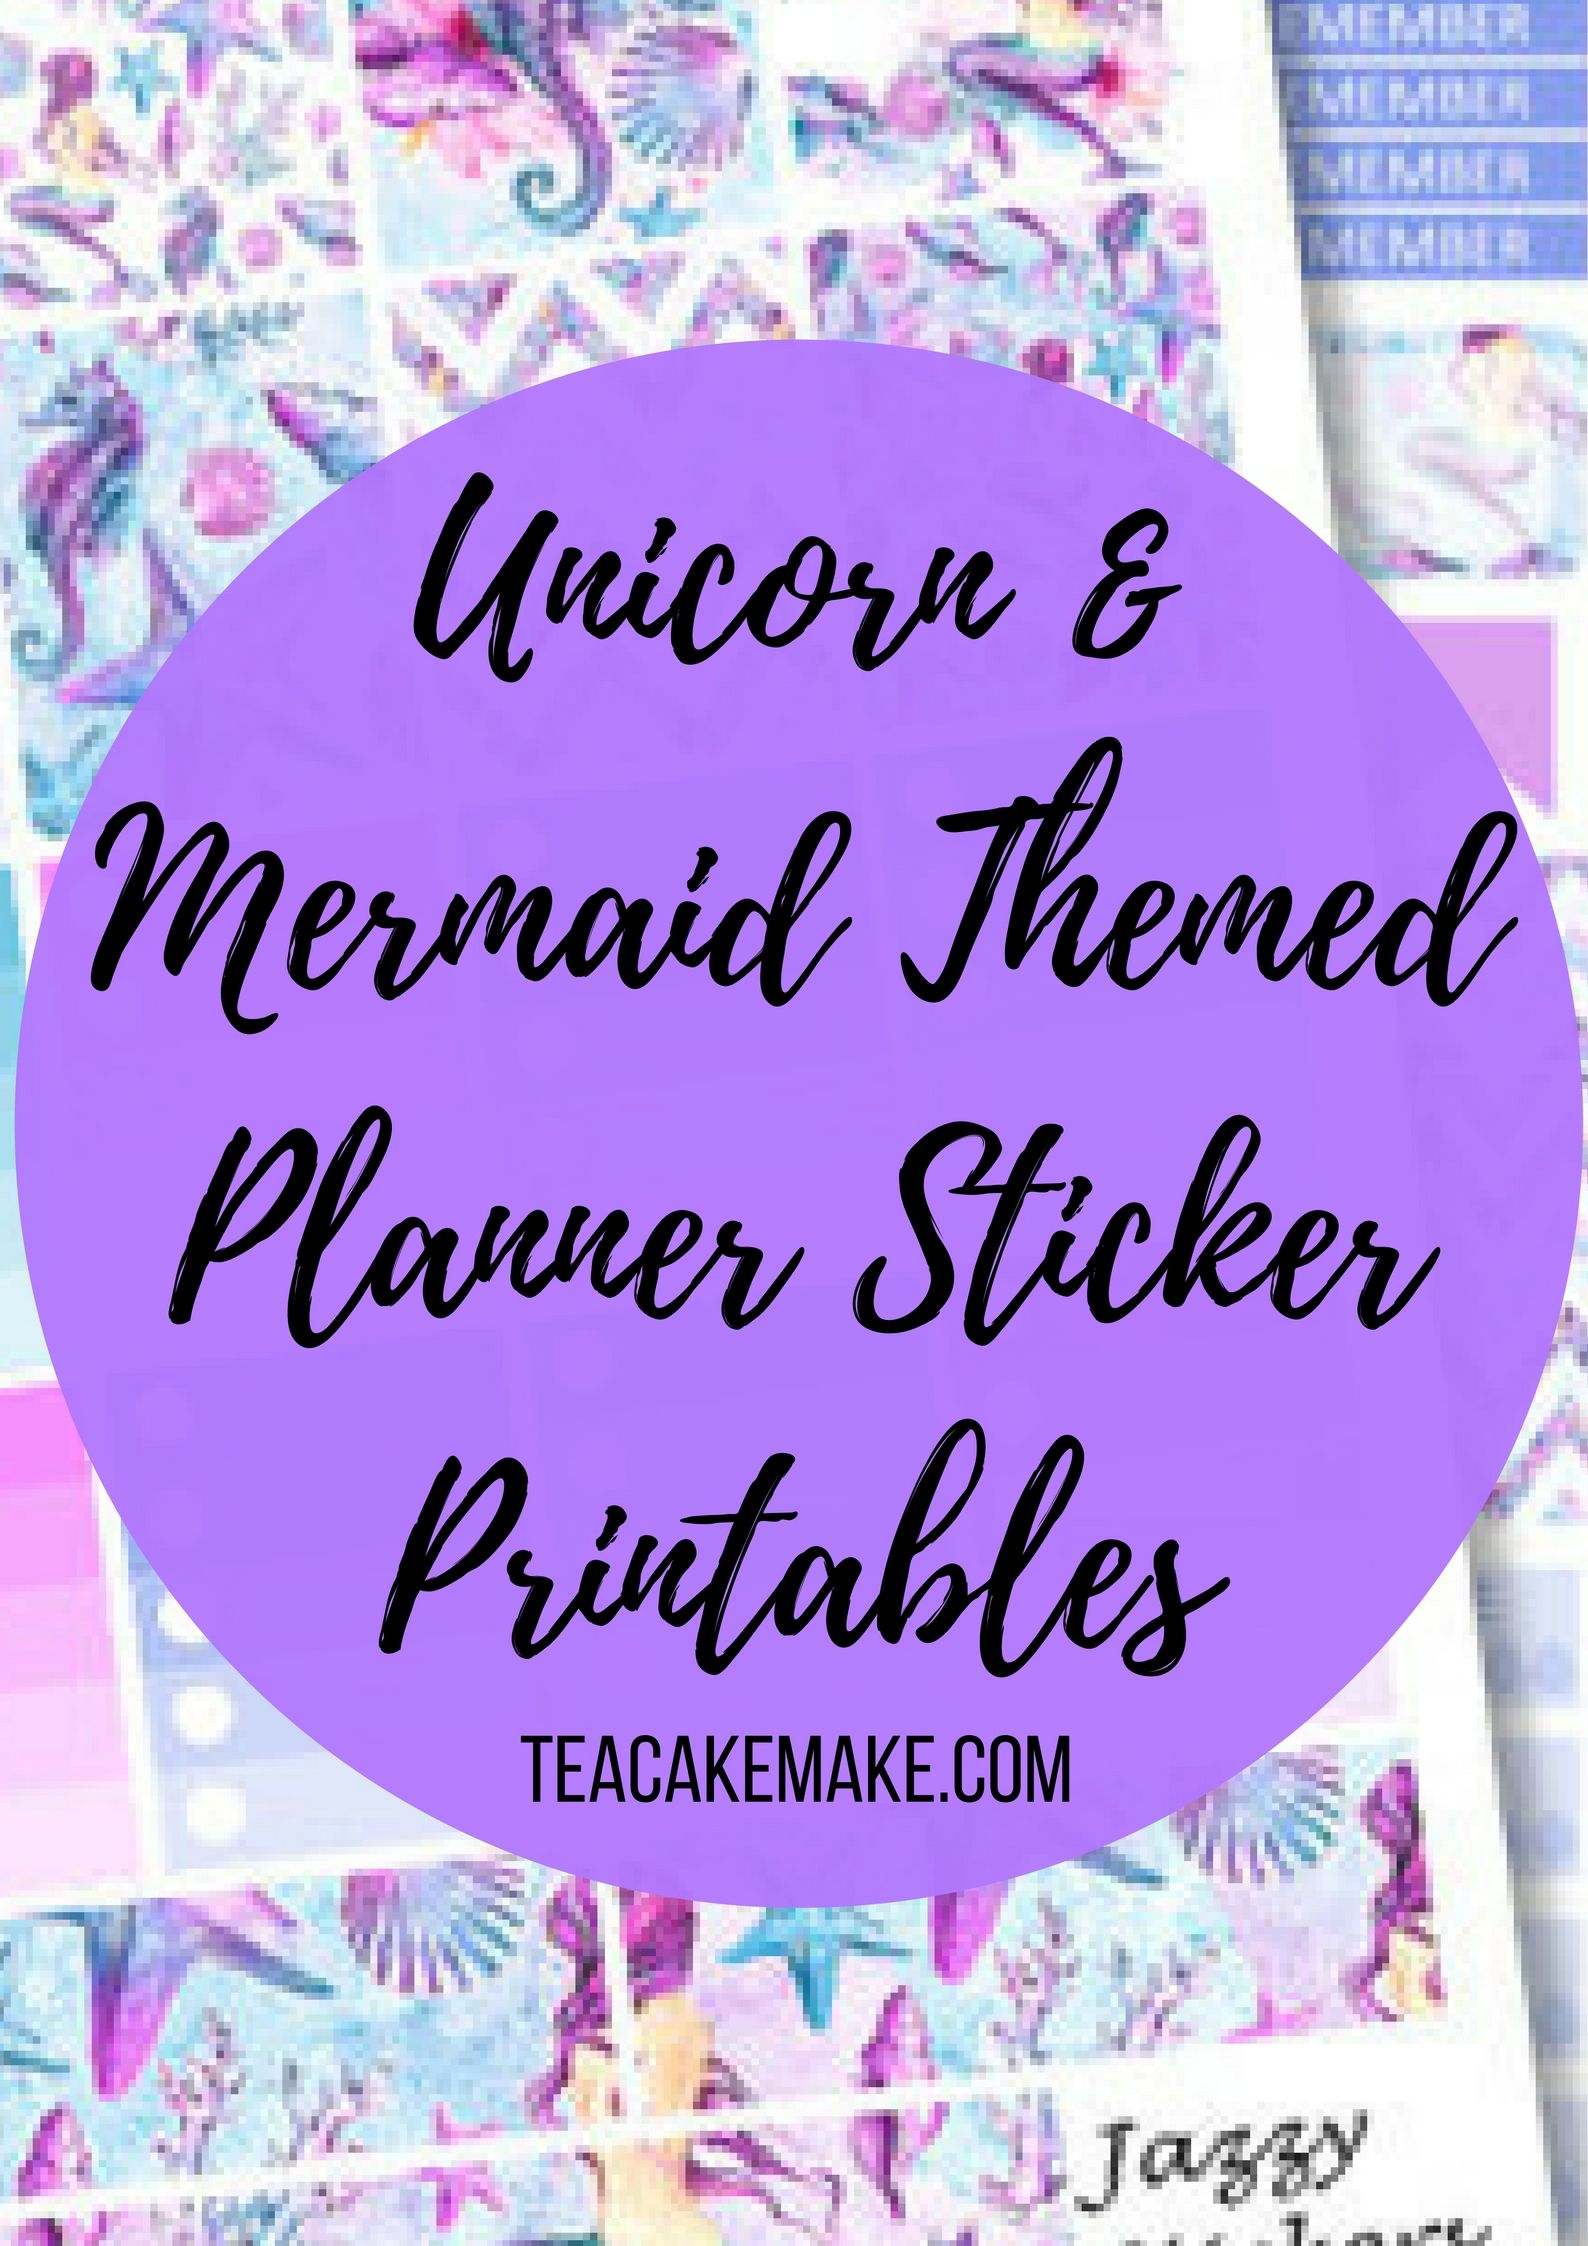 Follow the unicorn and mermaid trends in your own planner with this selection of gorgeous themed planner sticker printables from the best Etsy shops!